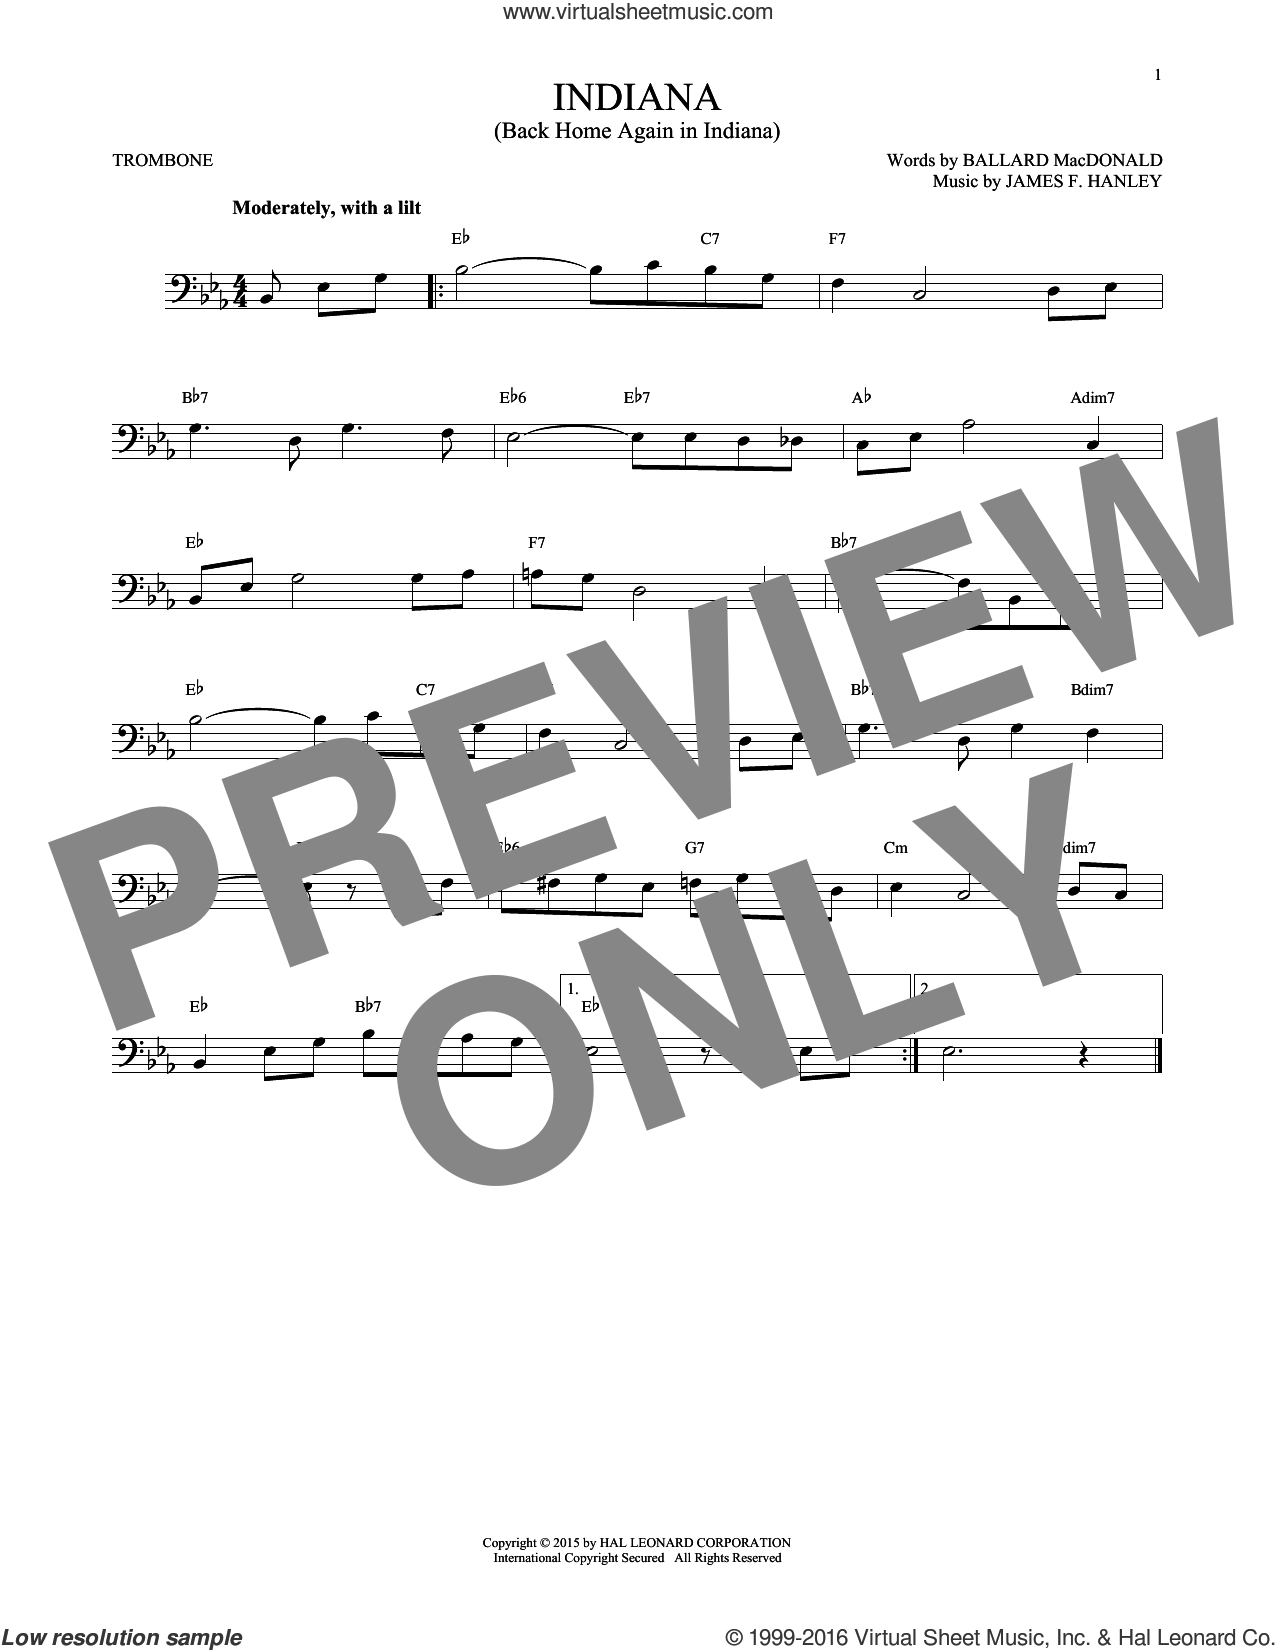 Indiana (Back Home Again In Indiana) sheet music for trombone solo by Ballard MacDonald and James Hanley, intermediate skill level